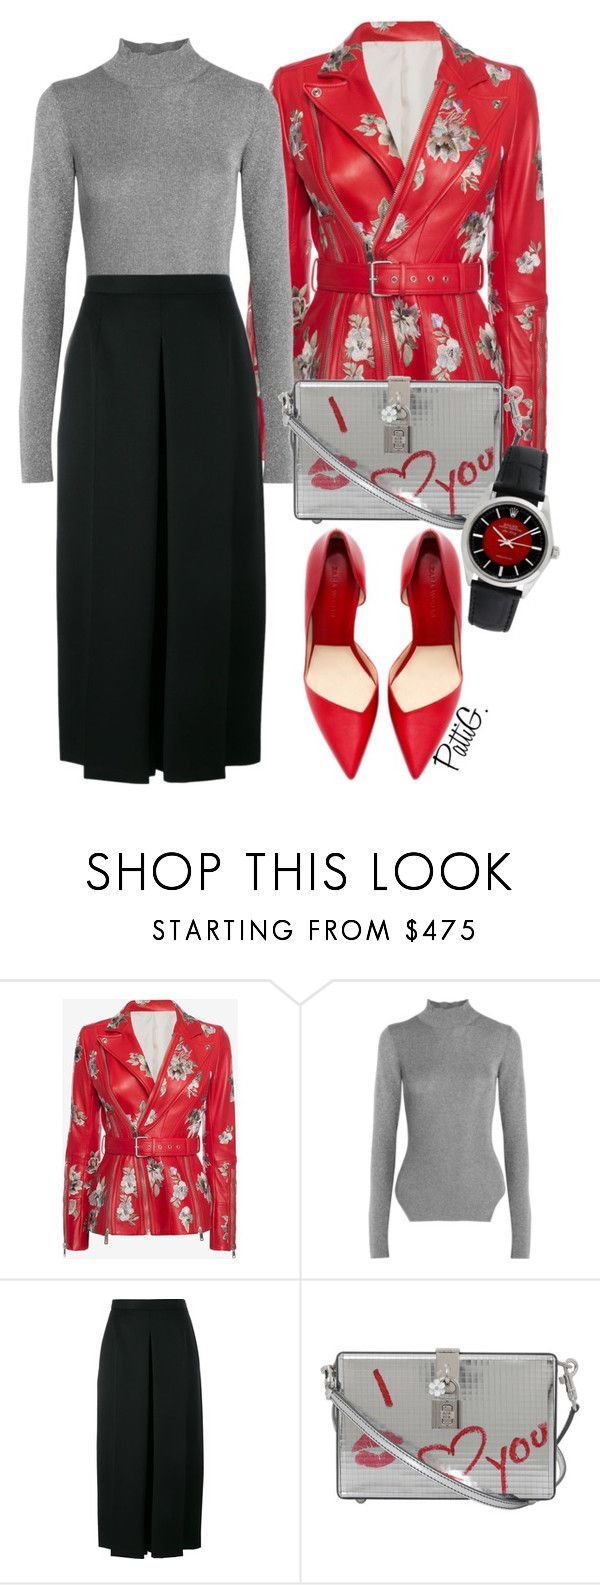 """AJA"" by patigshively ❤ liked on Polyvore featuring Alexander McQueen, Thierry Mugler, Dolce&Gabbana and Rolex"